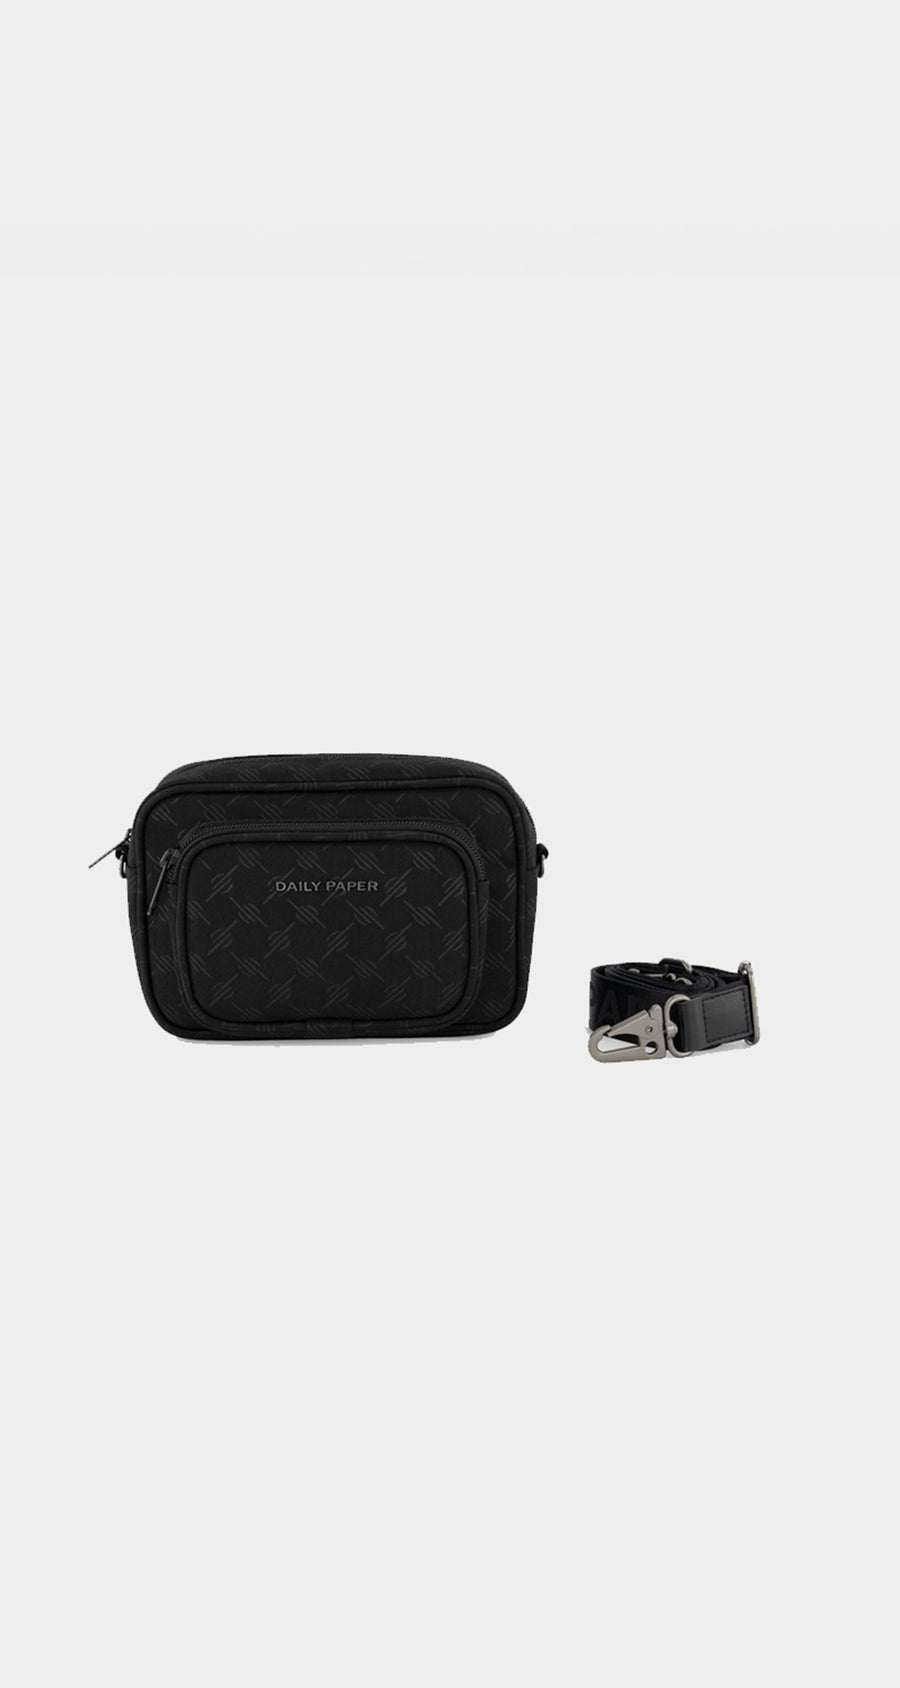 Daily Paper - Black Monogram Homea Bag - Front